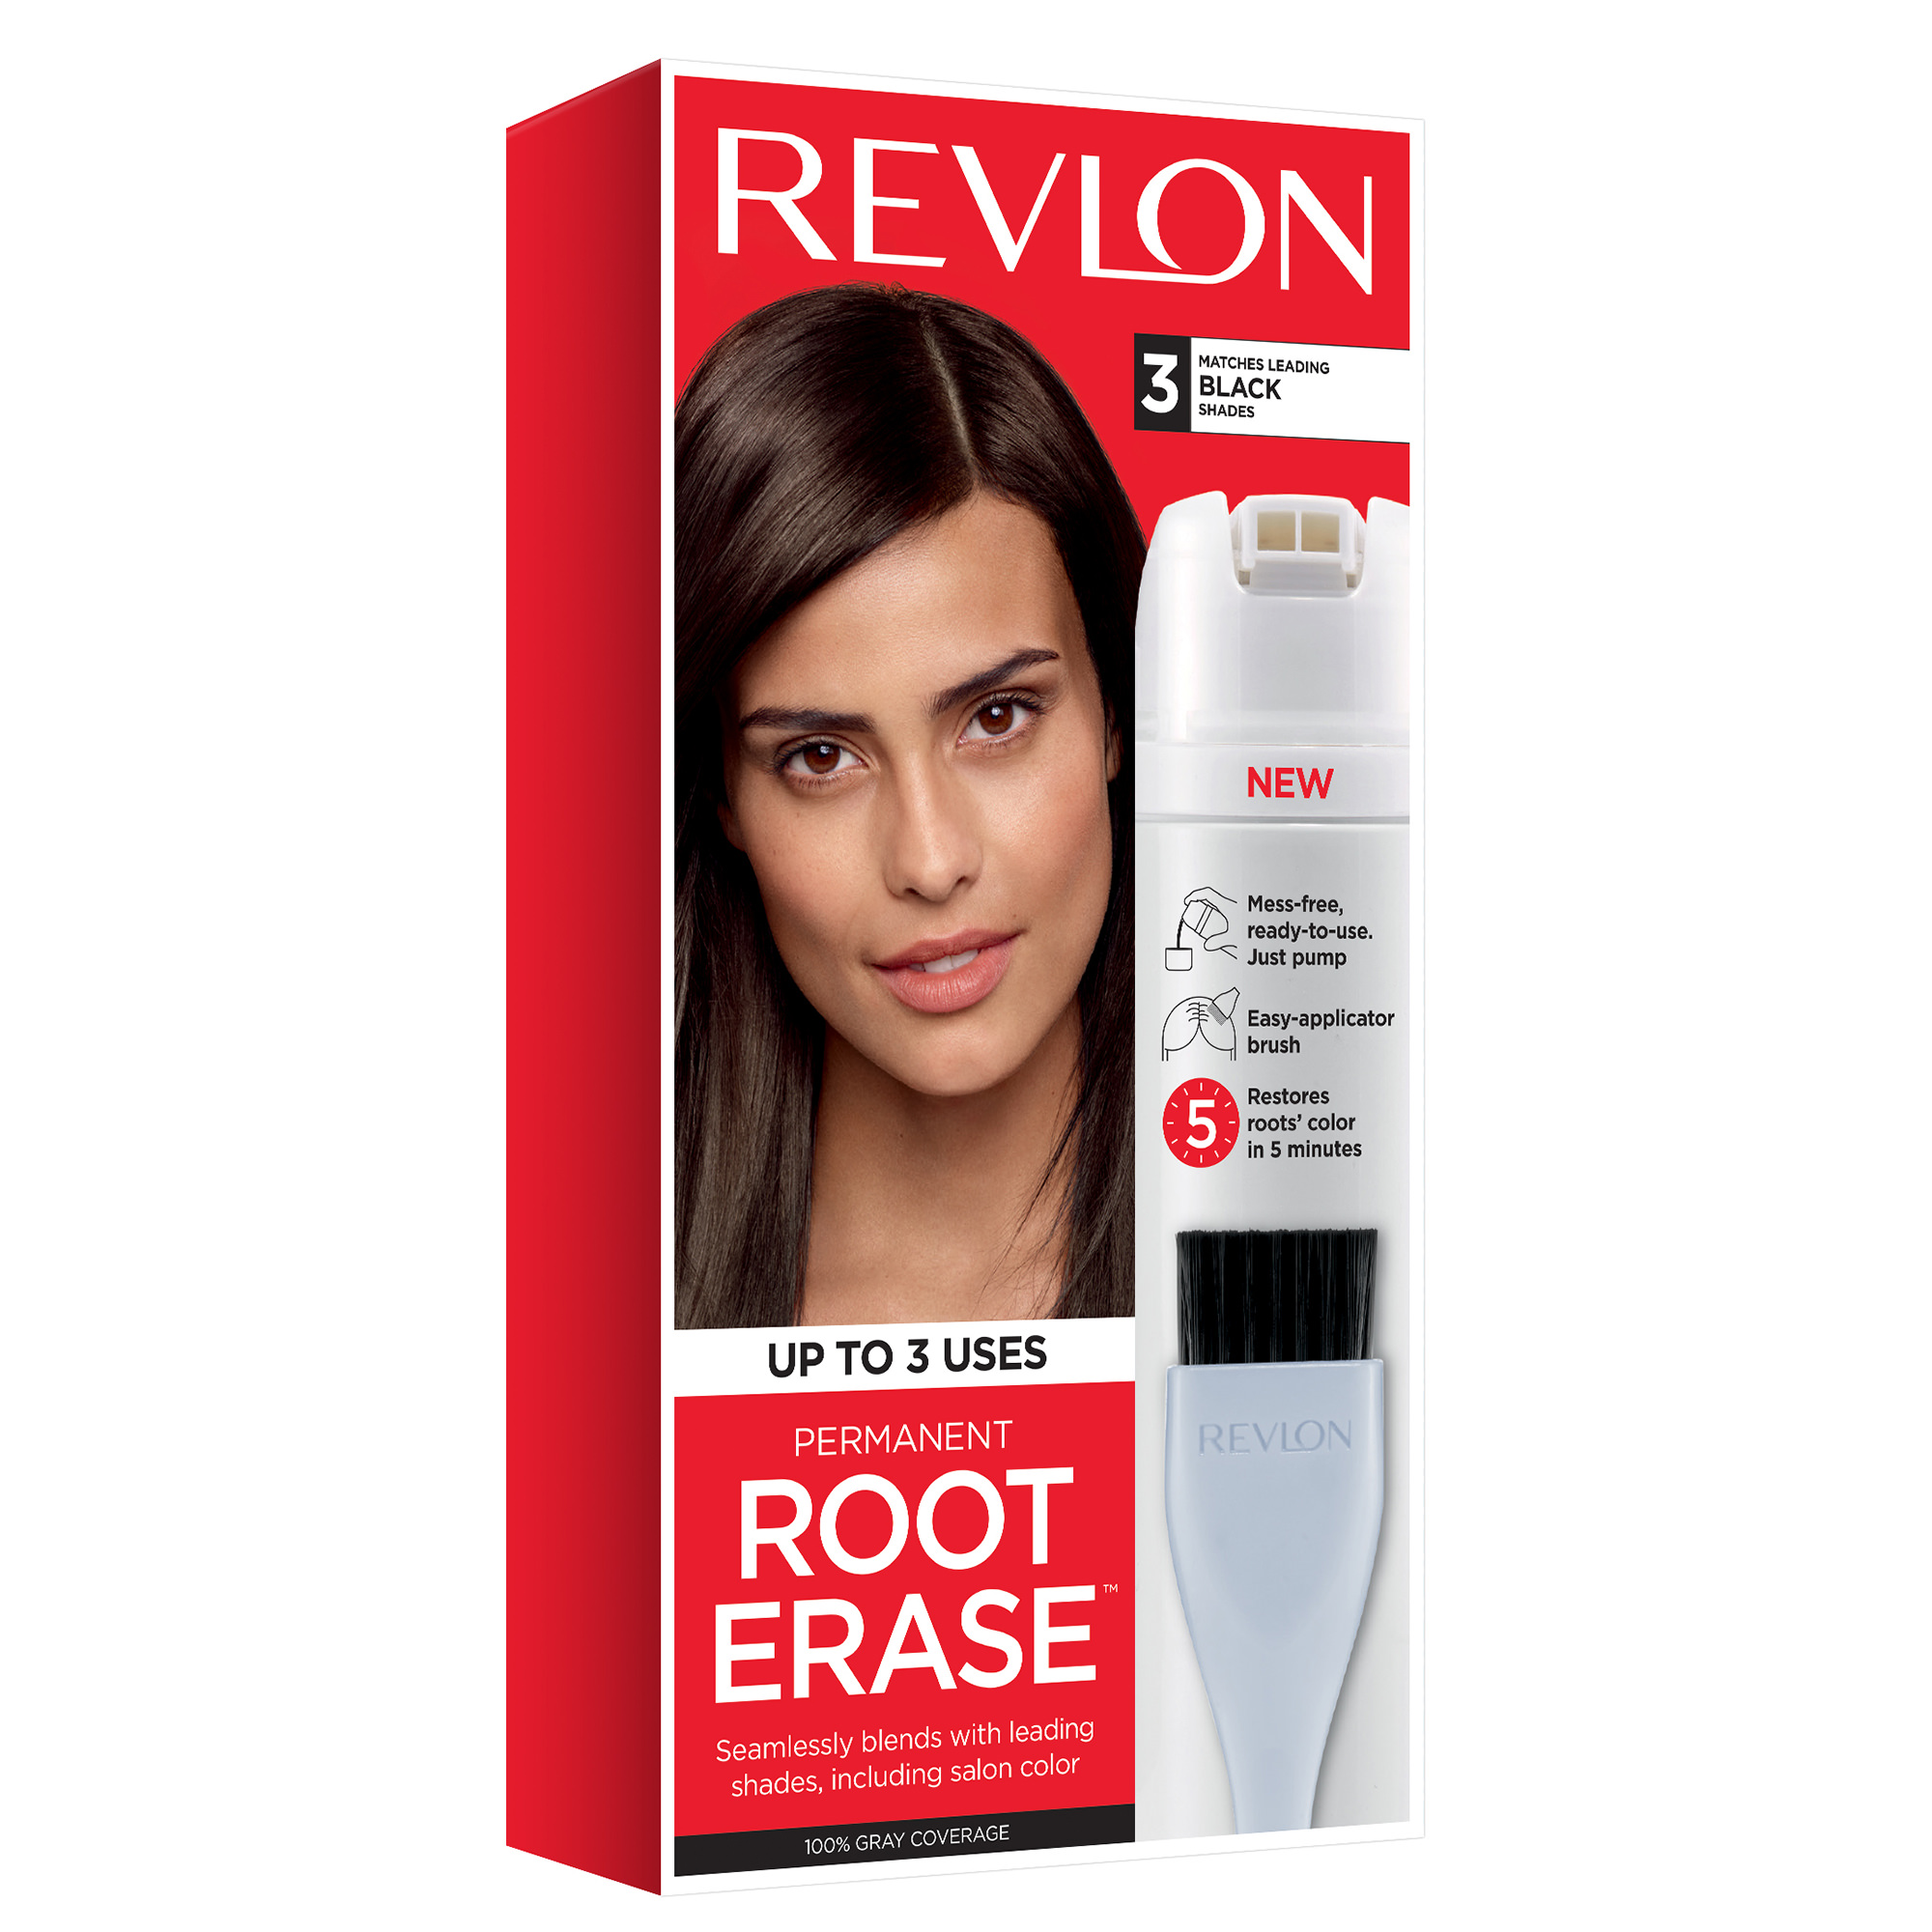 Revlon Permanent Root Erase Roots Touch Up Hair Color Root Touch Up - Black - 3.2 fl oz